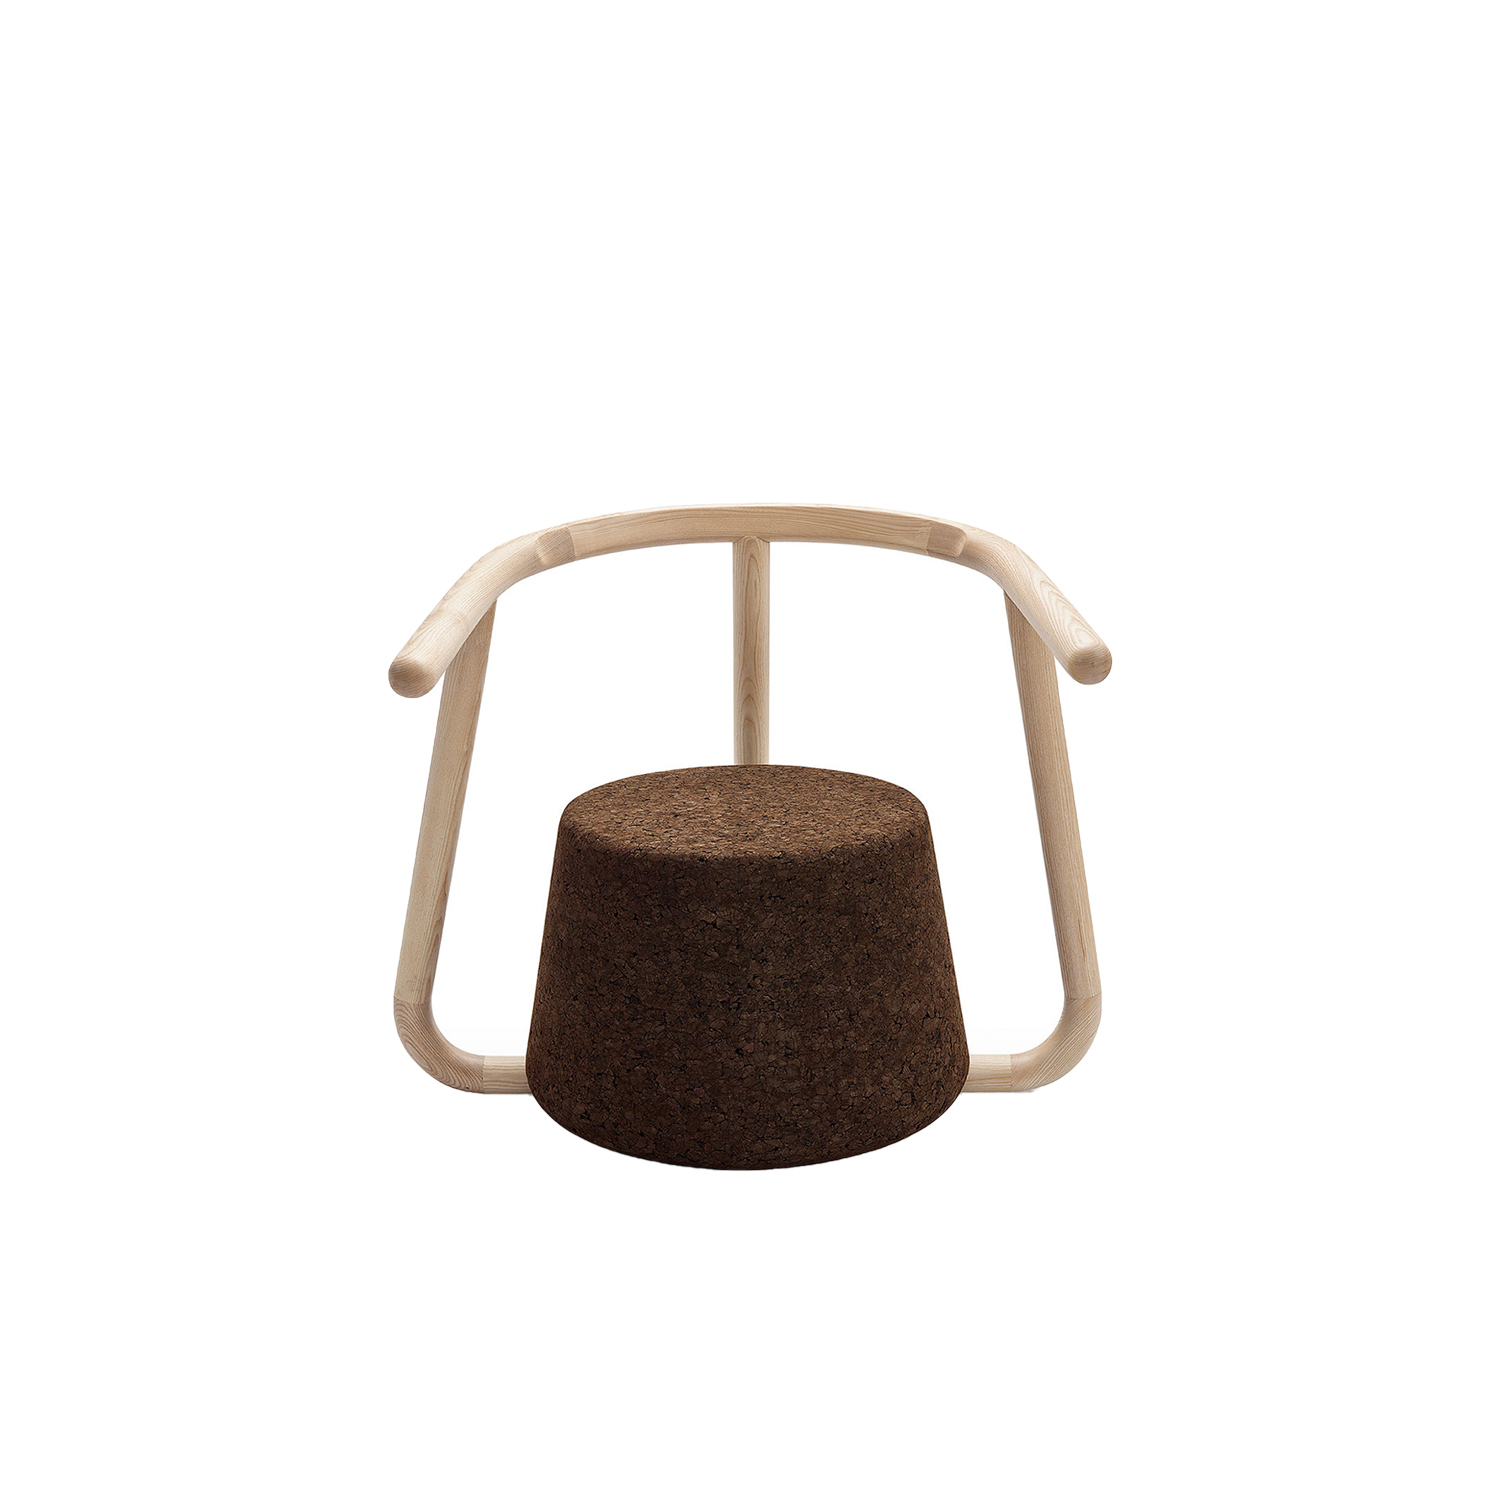 """Ypsilon Lounge Chair - It is only used cork of the branches (falca) for the manufacture of cork granules. These are block clusters in autoclave, being 100% natural process, without use of additives. Technology, developed by Sofalca, consists of injecting water vapour through the pallets that will expand and agglutinate with the resins of the cork itself. This """"cooking"""" gives also dark colour to the agglomerated cork, like chocolate. In the production of steam I used biomass, obtained on milling and cleaning the falca, what makes it truly ecological production and without waste, 95% energy self-sufficient. As a super-material, cork offers so many advantages, because in addition to its excellent thermic, acoustic insulation and anti vibration characteristic, it is also a CO2 sink playing a key-role in the environment. 